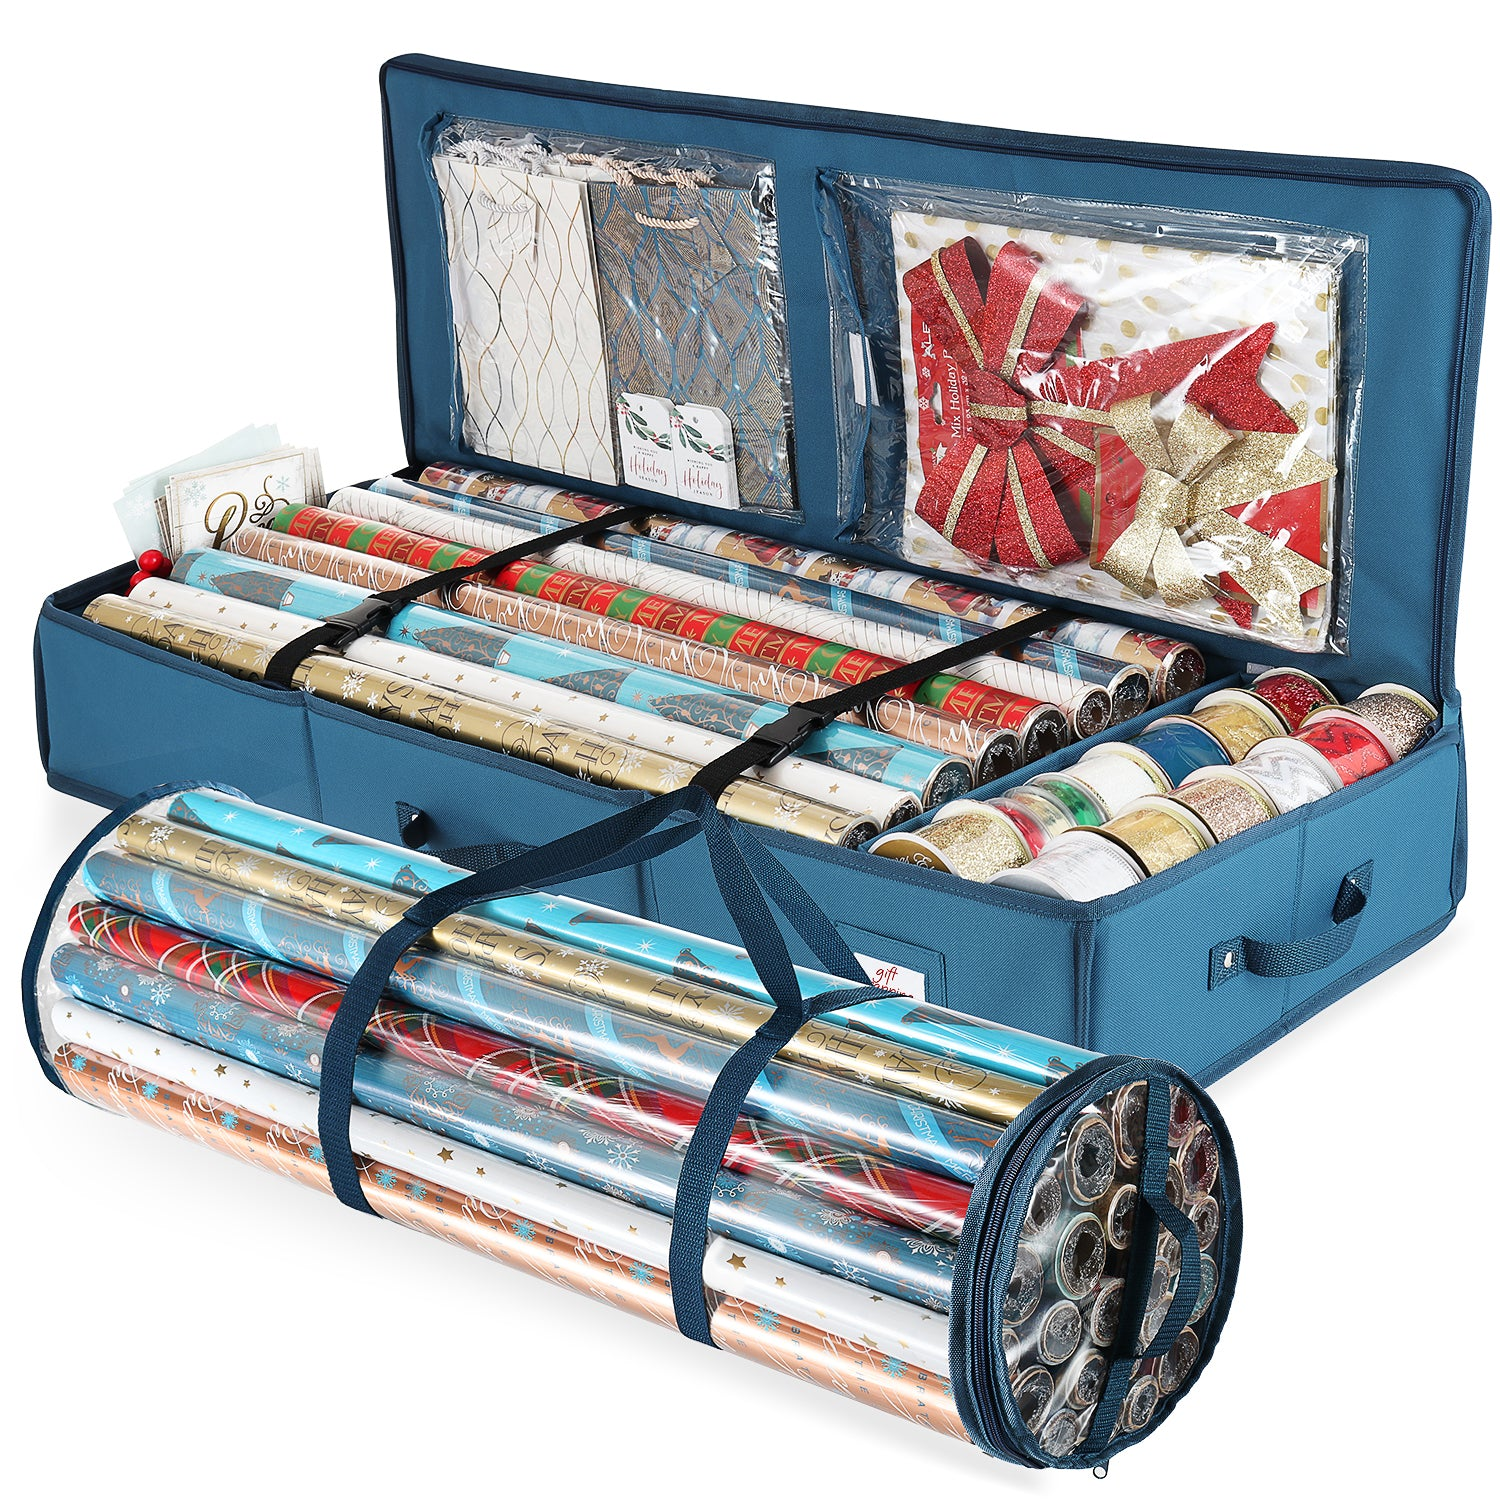 Hearth & Harbor Gift Wrap Storage Organizer Set - Set of 2 Christmas Organizer Storage Containers For Holiday Wrapping Paper And Accessories